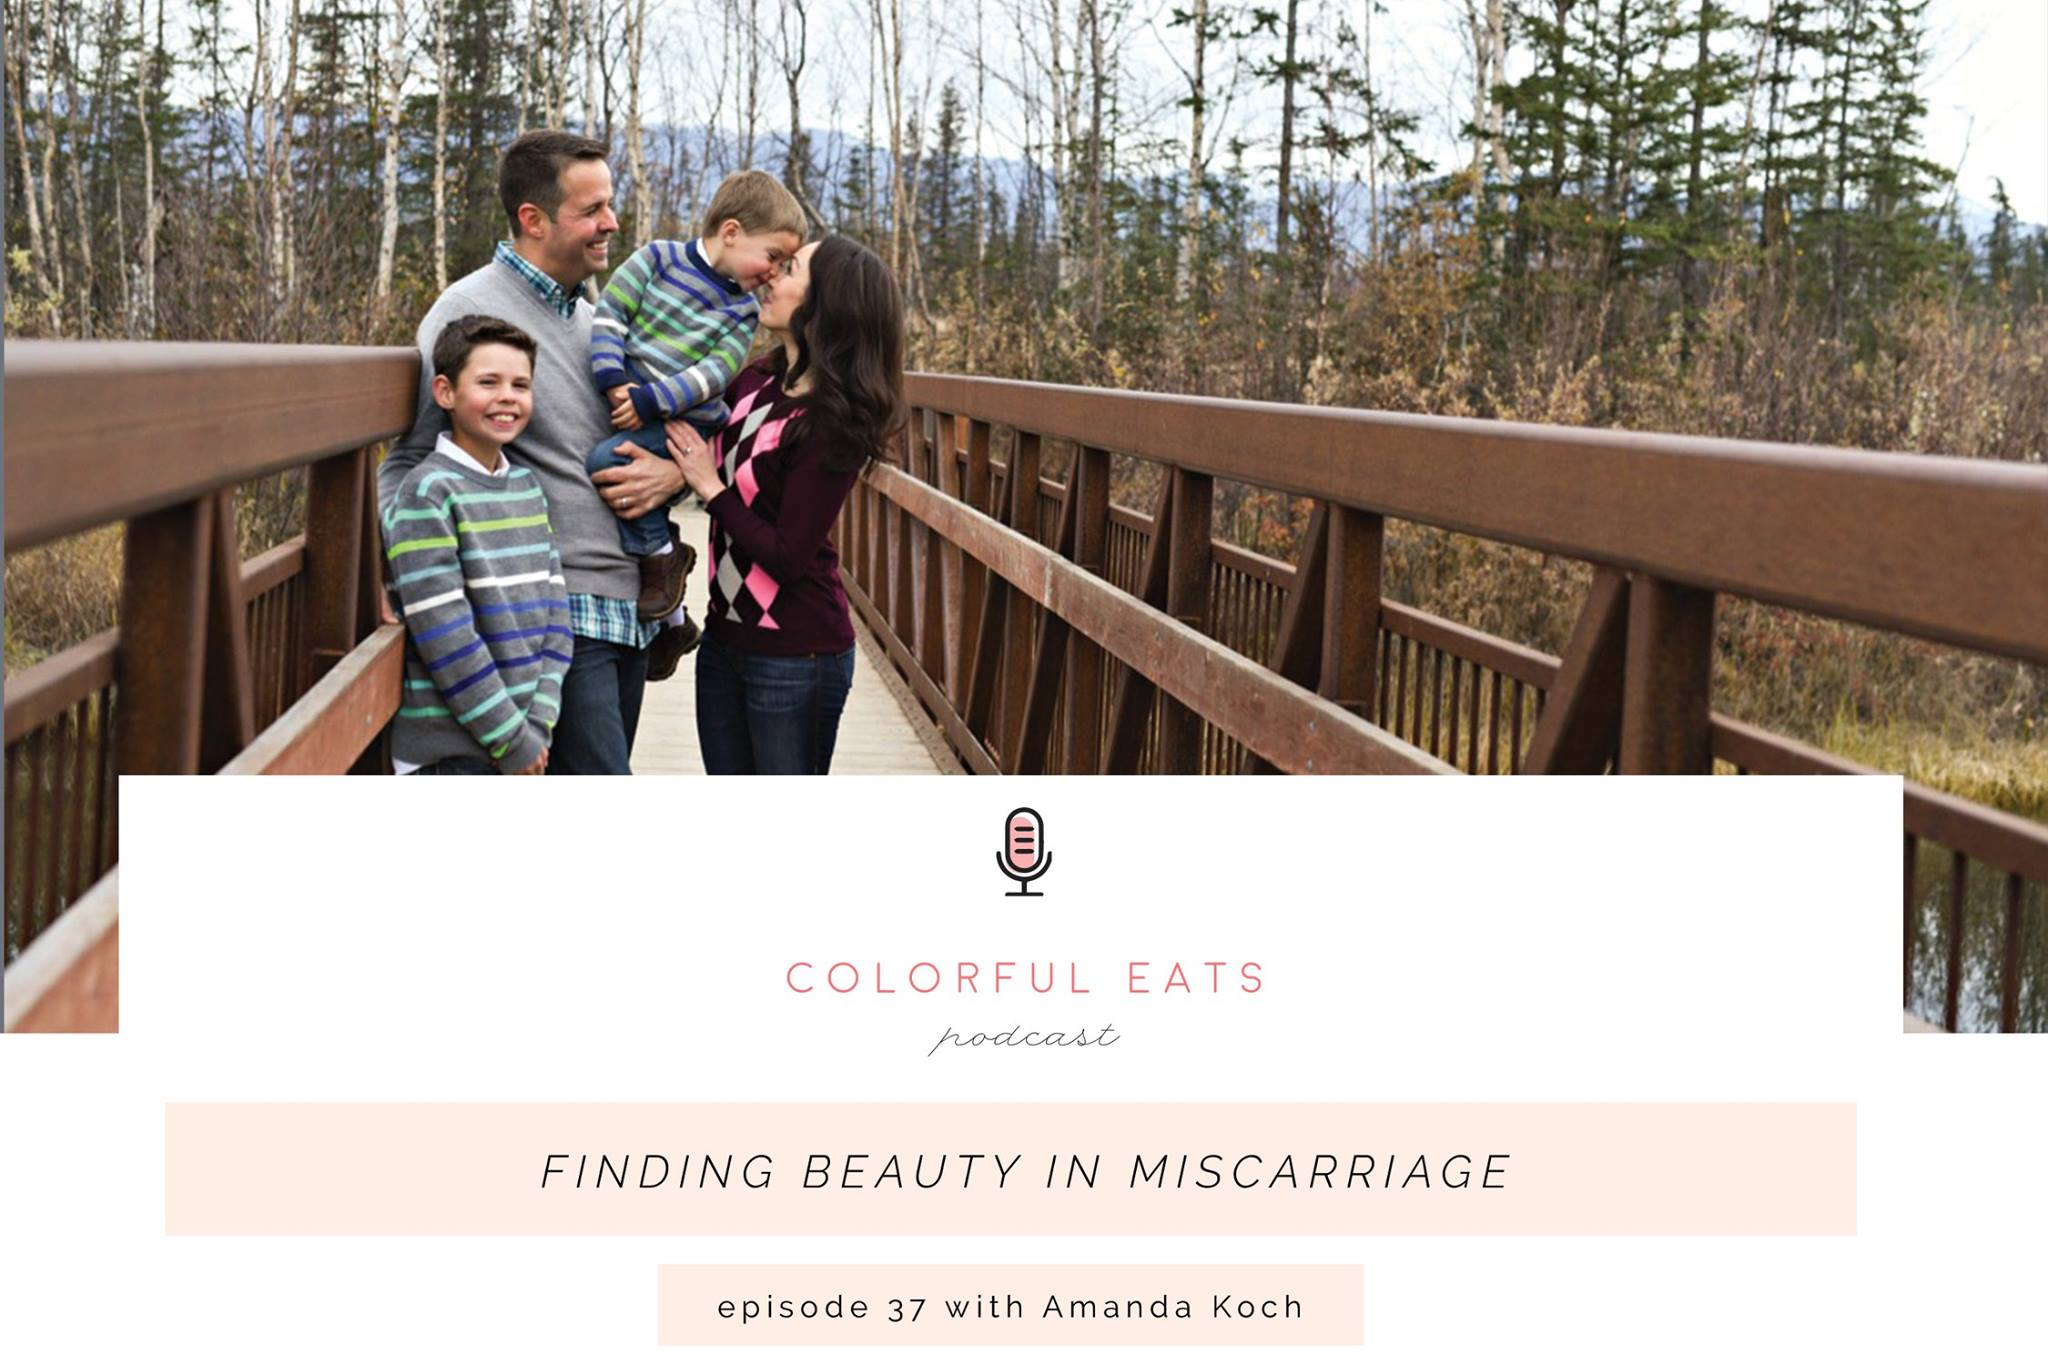 Finding Beauty in Miscarriage – Colorful Eats Podcast